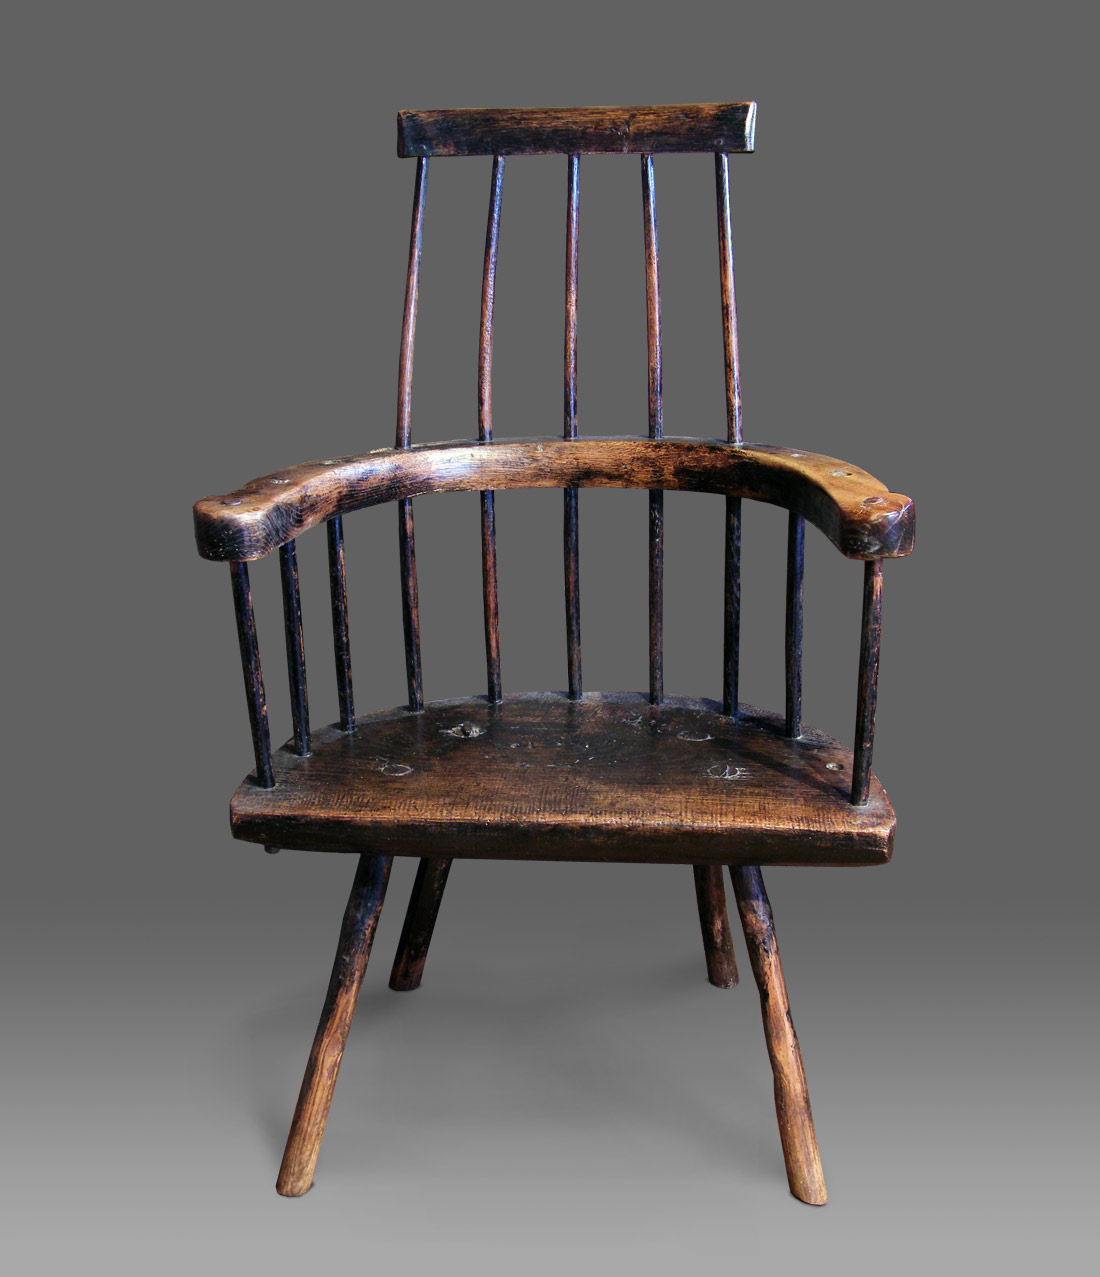 ANTIQUE STICK CHAIR THE COMB BACK sits above swept arms made from a ...